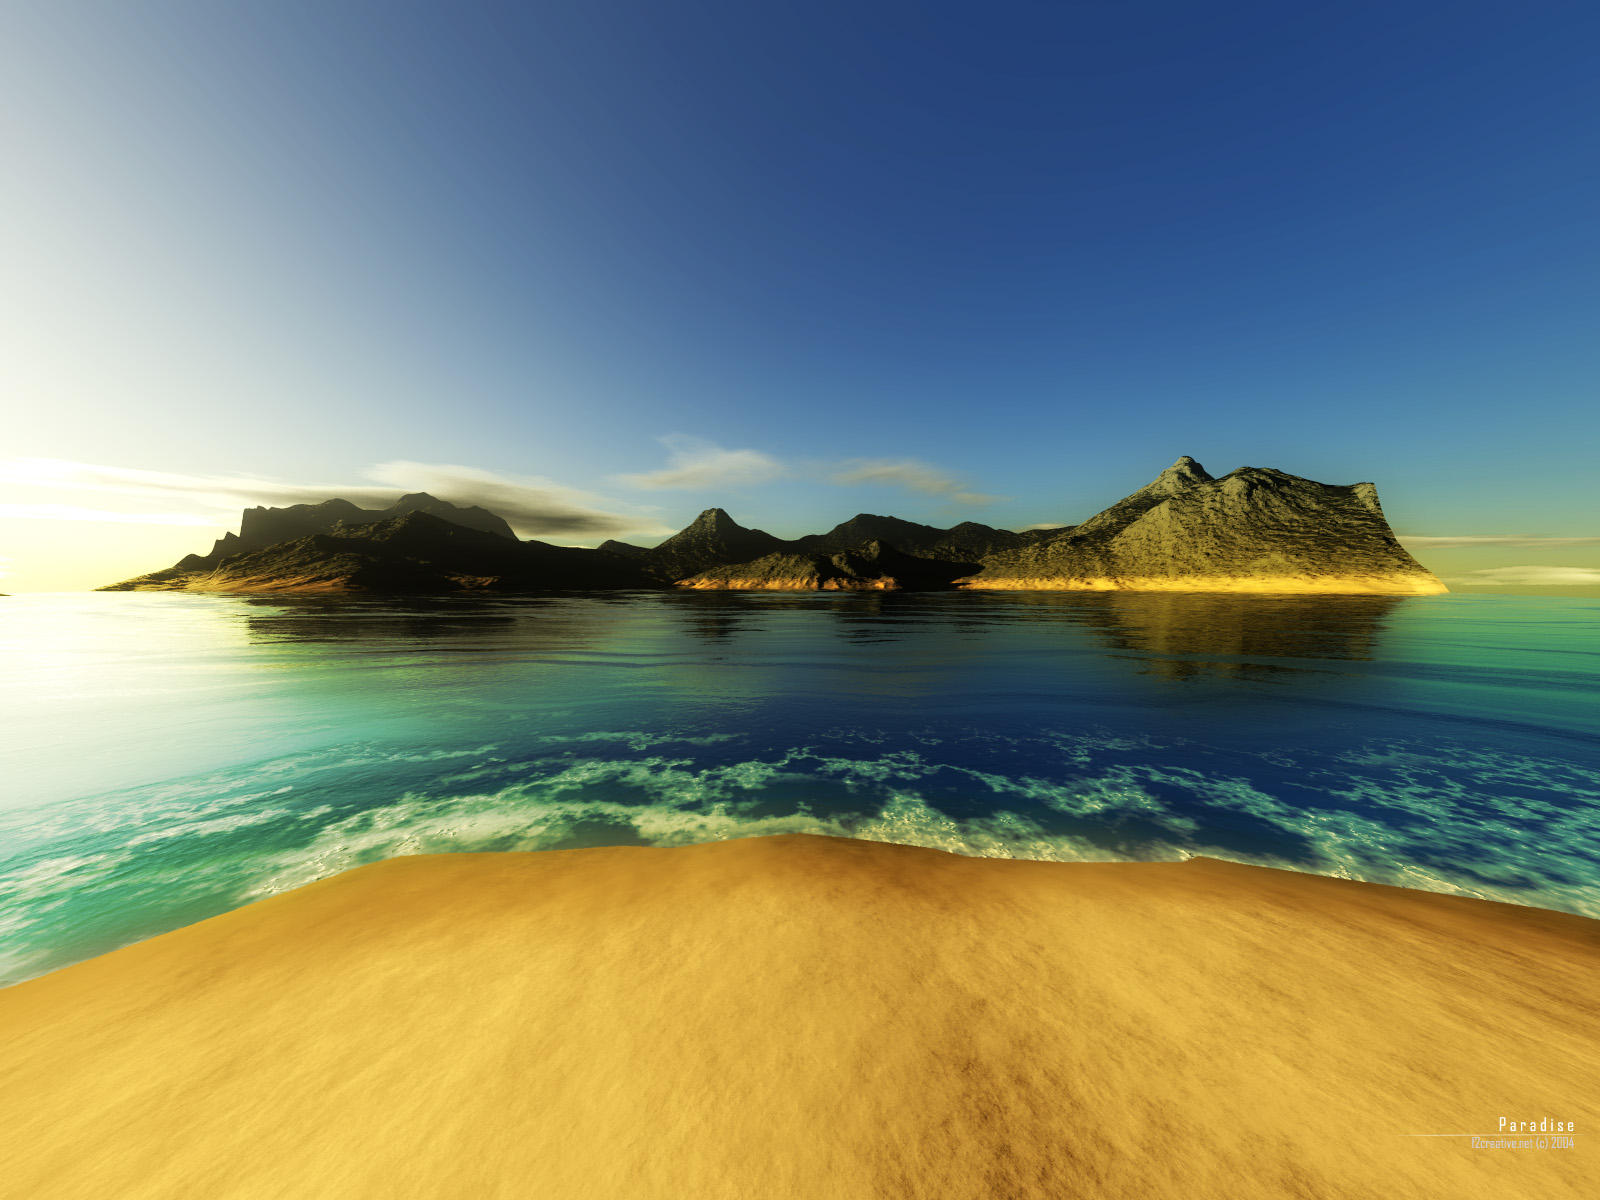 Exotic Paradise Wallpaper Beaches Nature Wallpapers in jpg format